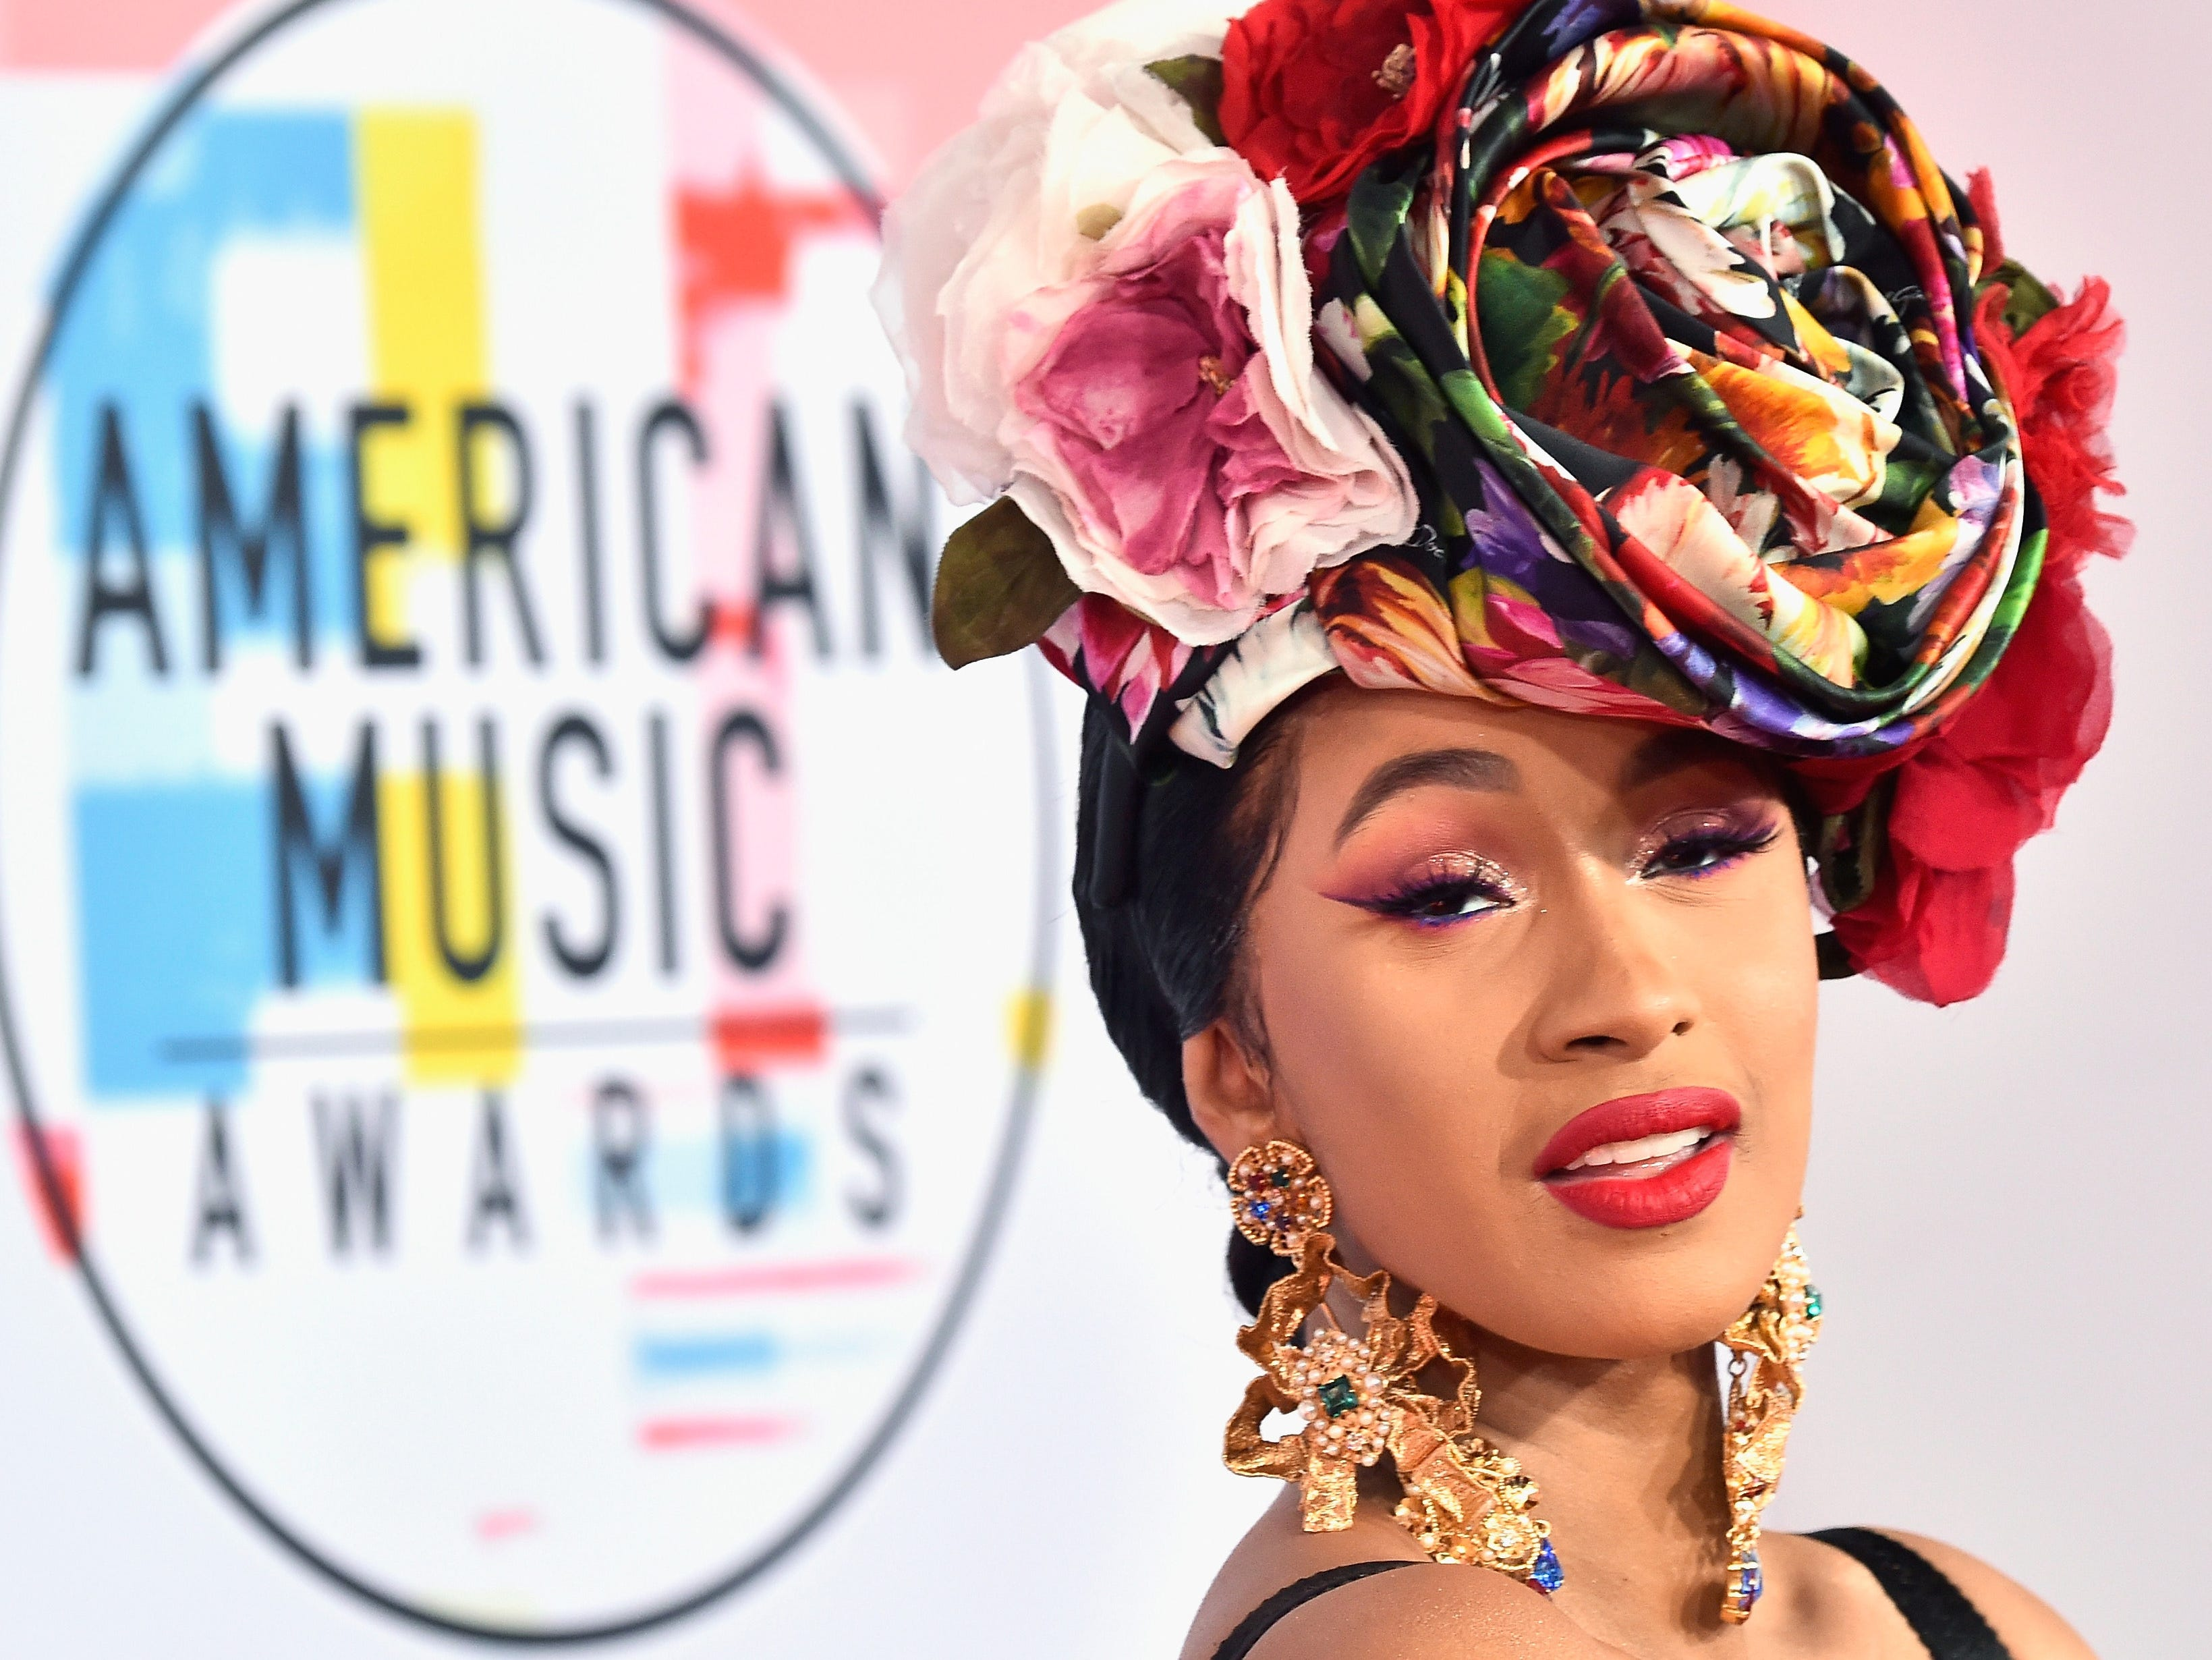 Cardi B attends the 2018 American Music Awards at Microsoft Theater on Oct. 9, 2018, in Los Angeles.